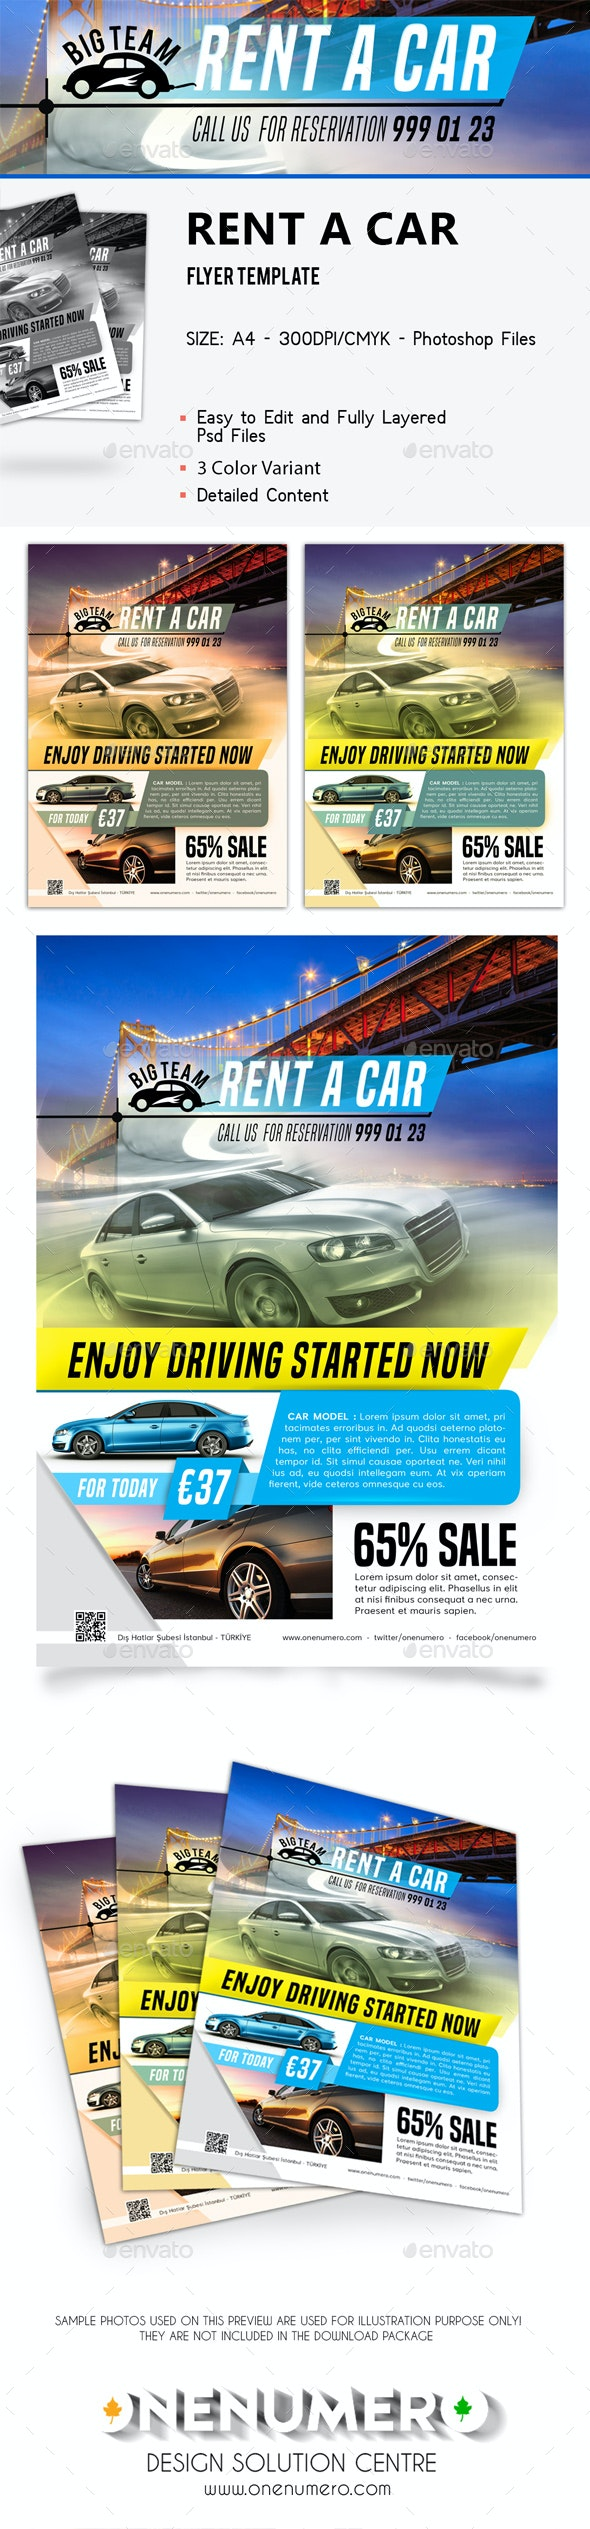 Rent a car Flyer - Corporate Business Cards